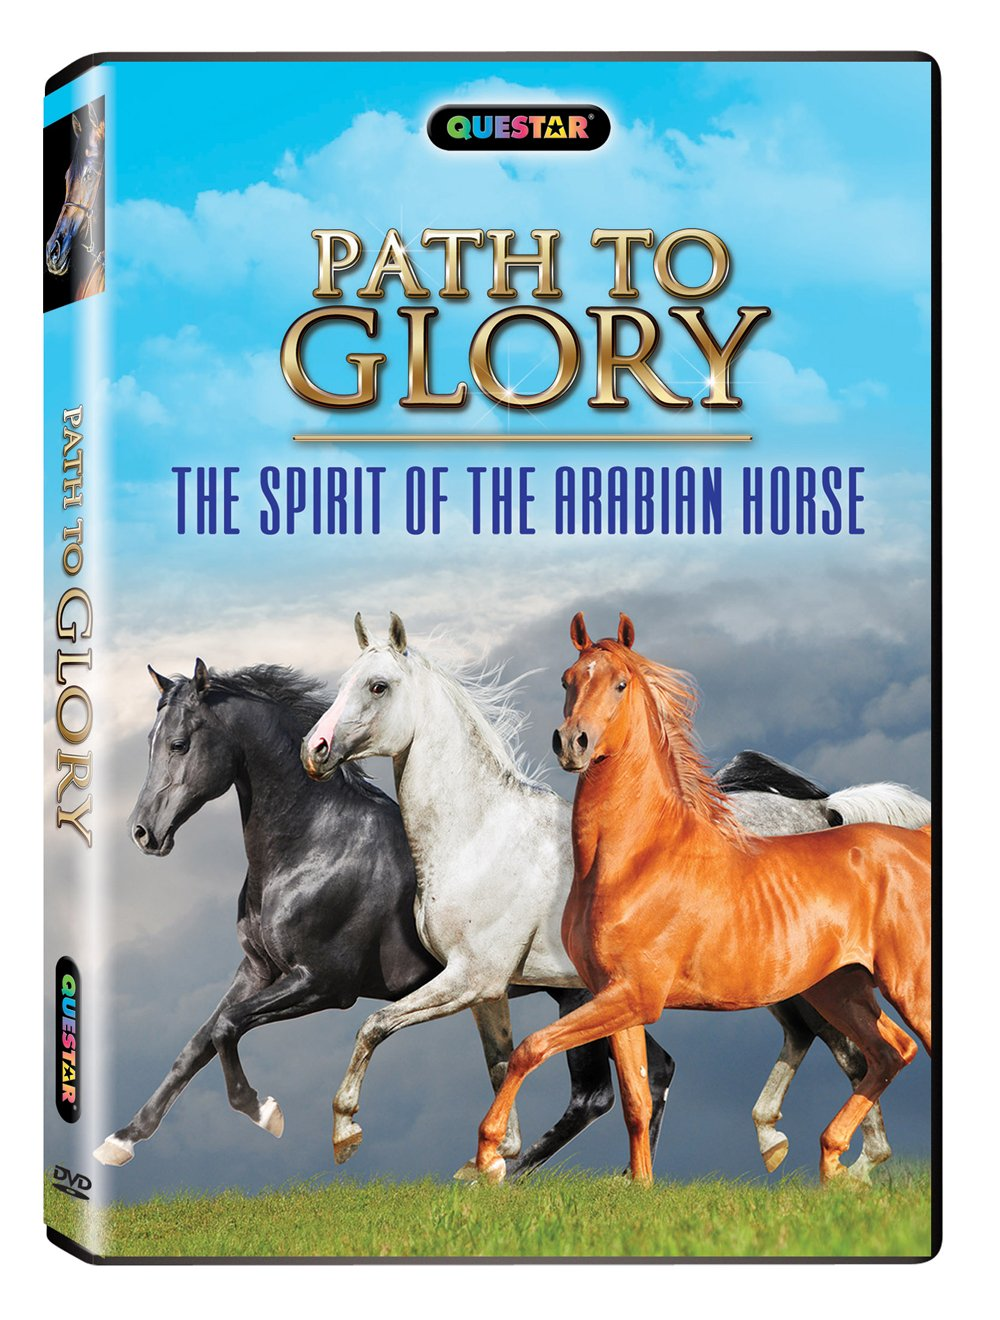 Amazon.com: Path to Glory: The Spirit of the Arabian Horse: A Film By  Horsefly Films, Sophie Pegrum, Jen Miller: Movies & TV